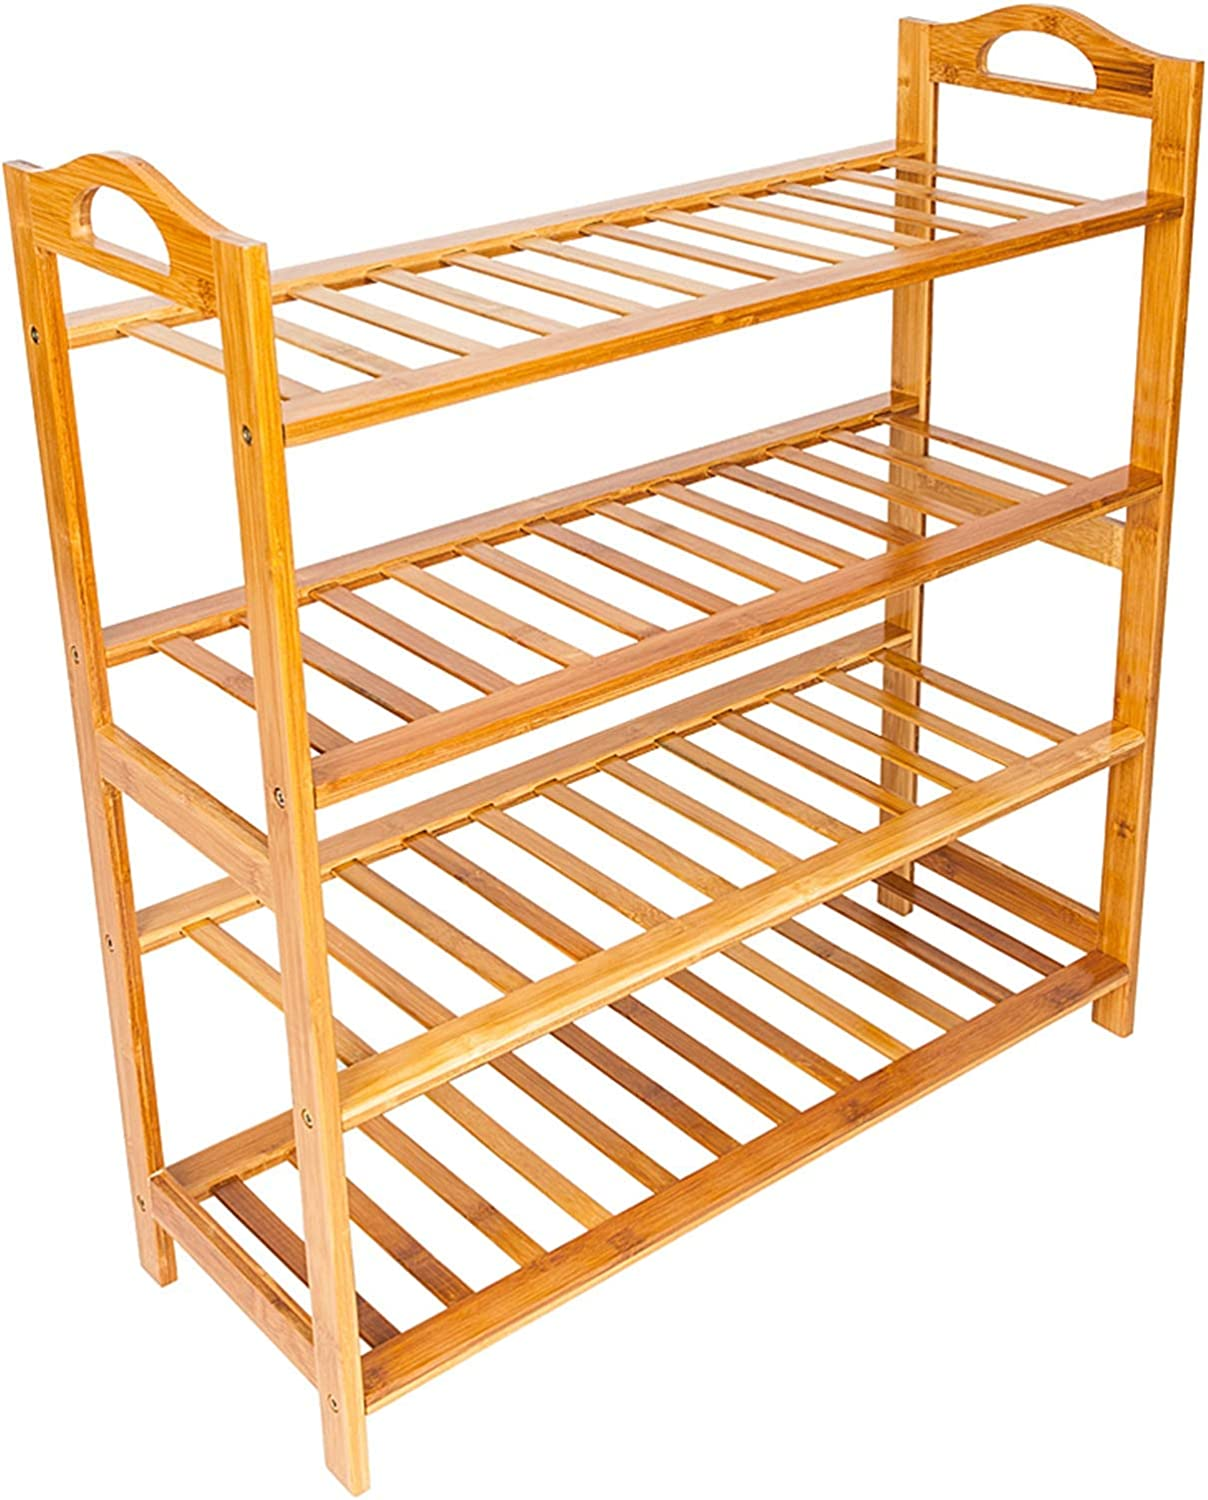 Aveland Industry No. 1 2021 US Concise 12-Batten 4 Tiers Bamboo cheap Wood Rack Shoe